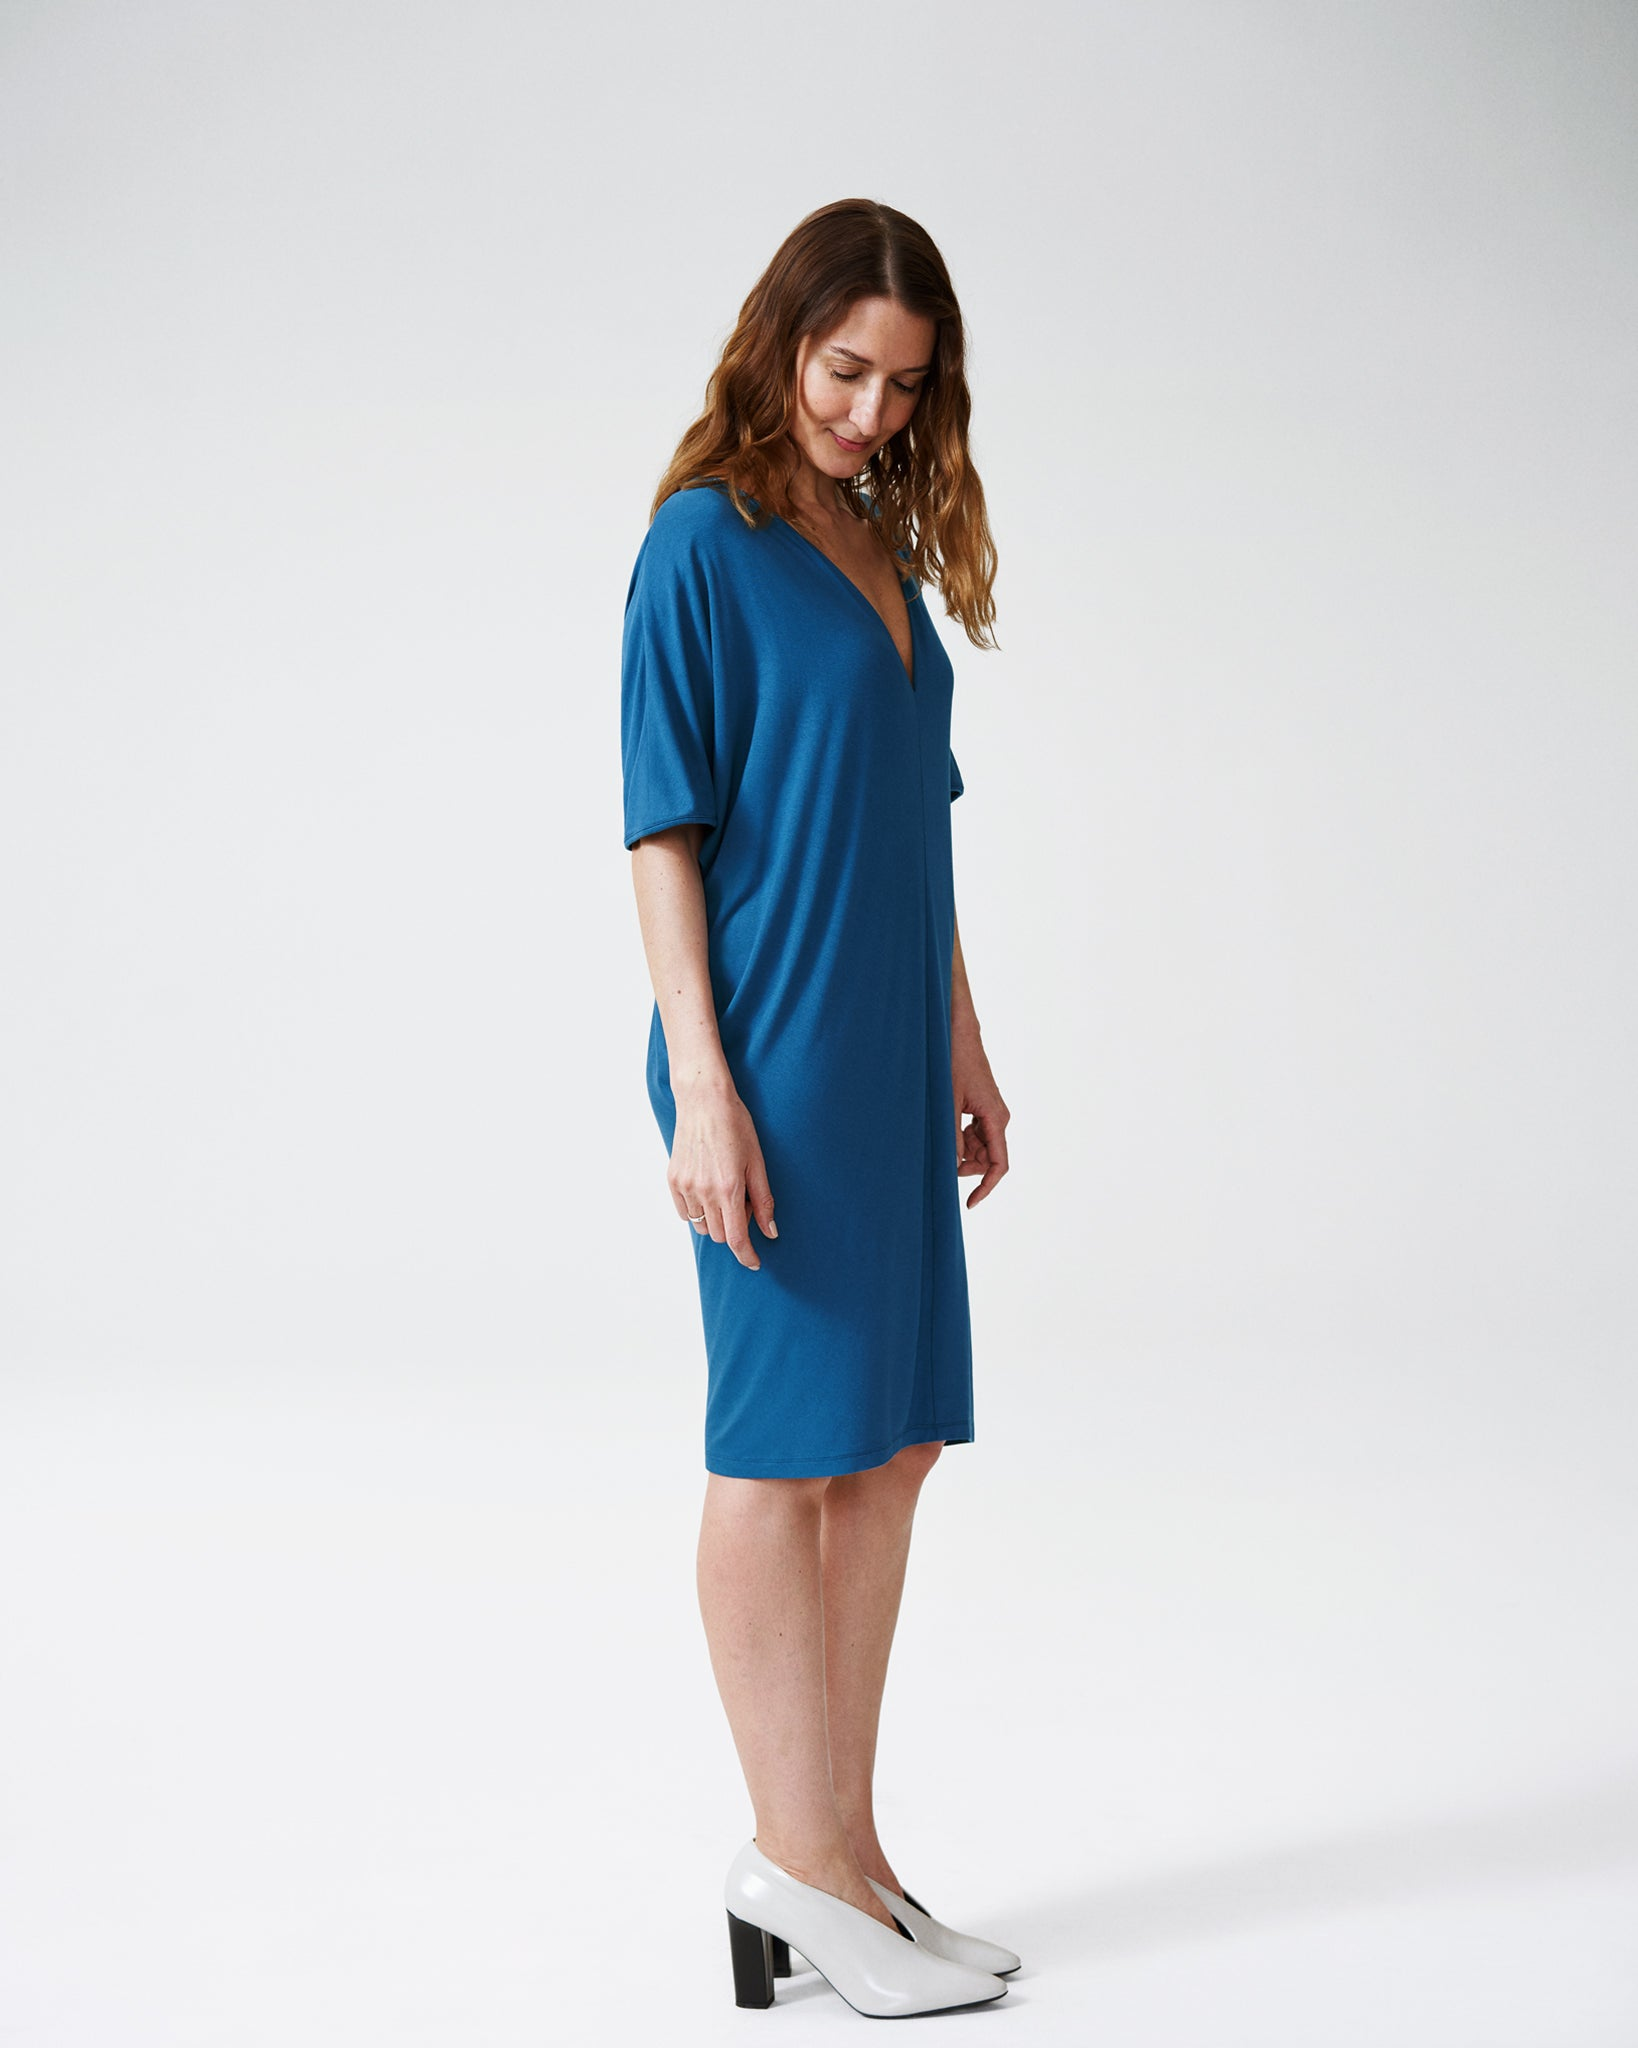 Teresa V-Neck Dress - Teal